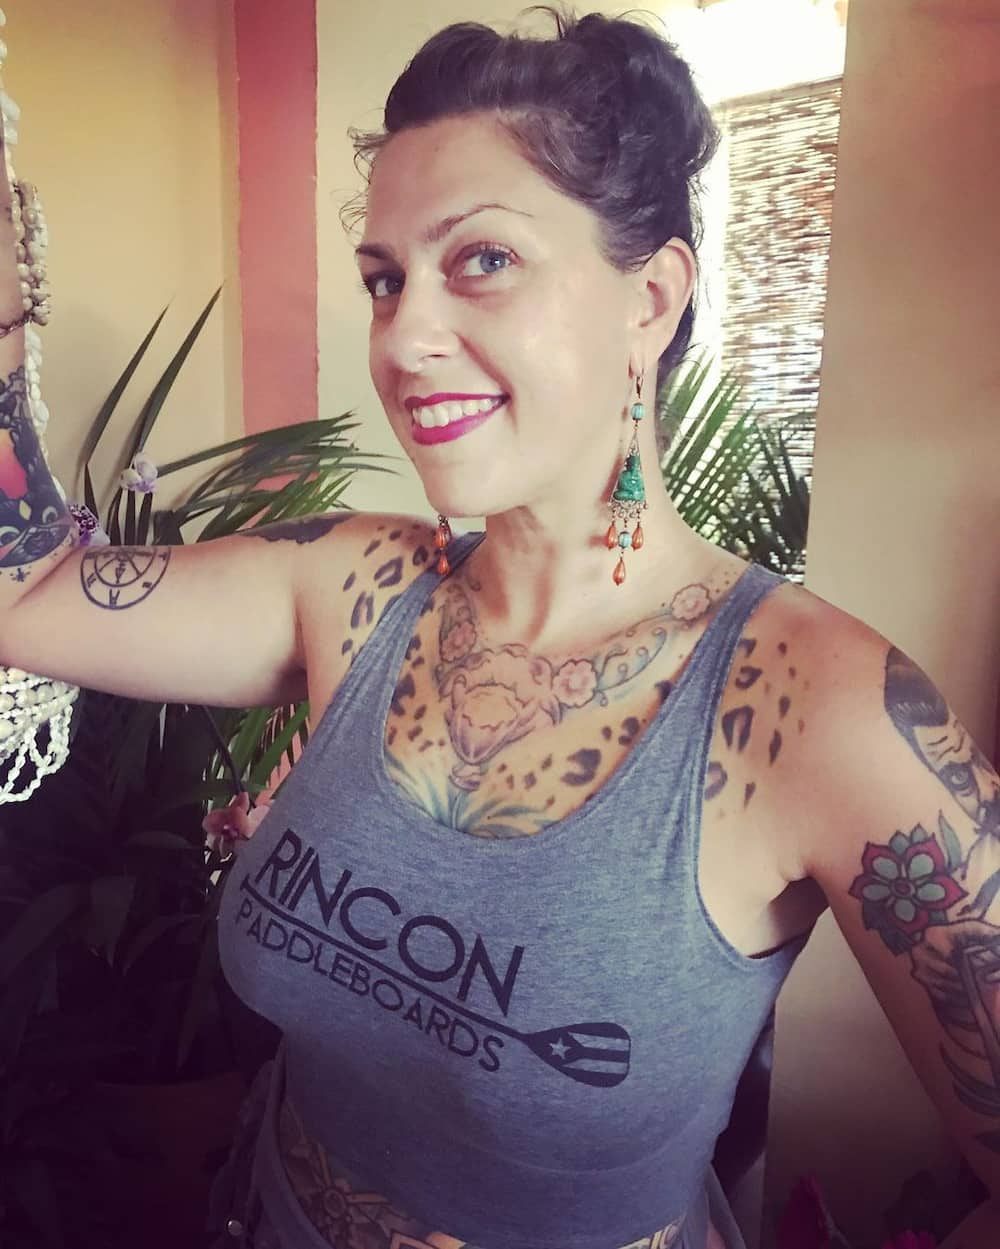 Is Danielle Colby married?